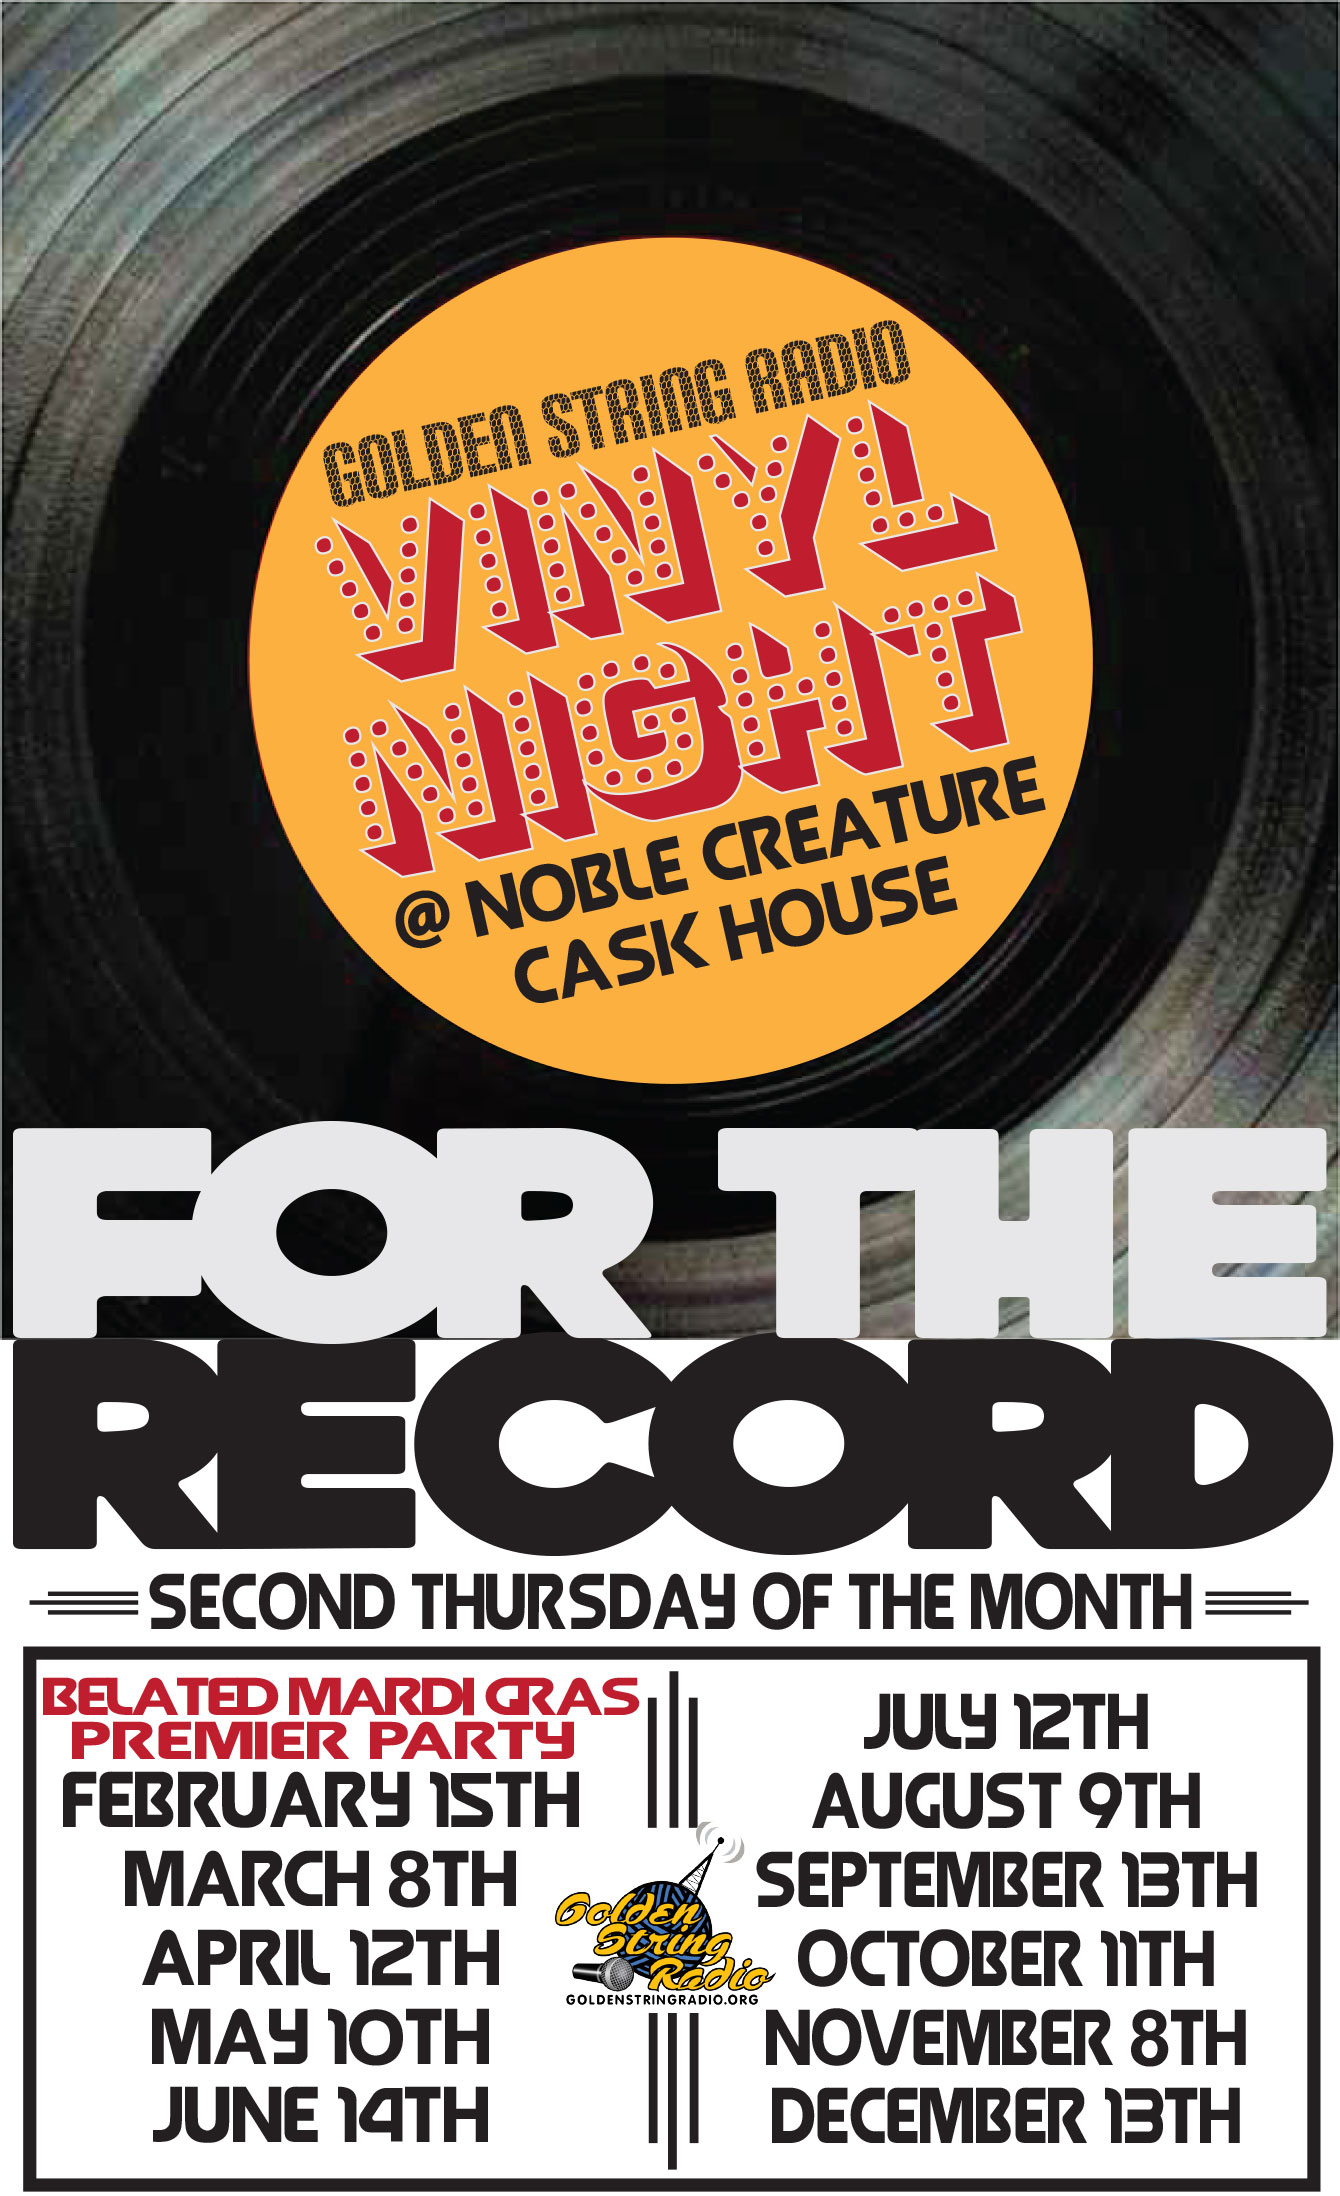 GSR Vinyl Night at Noble Creature Cask House